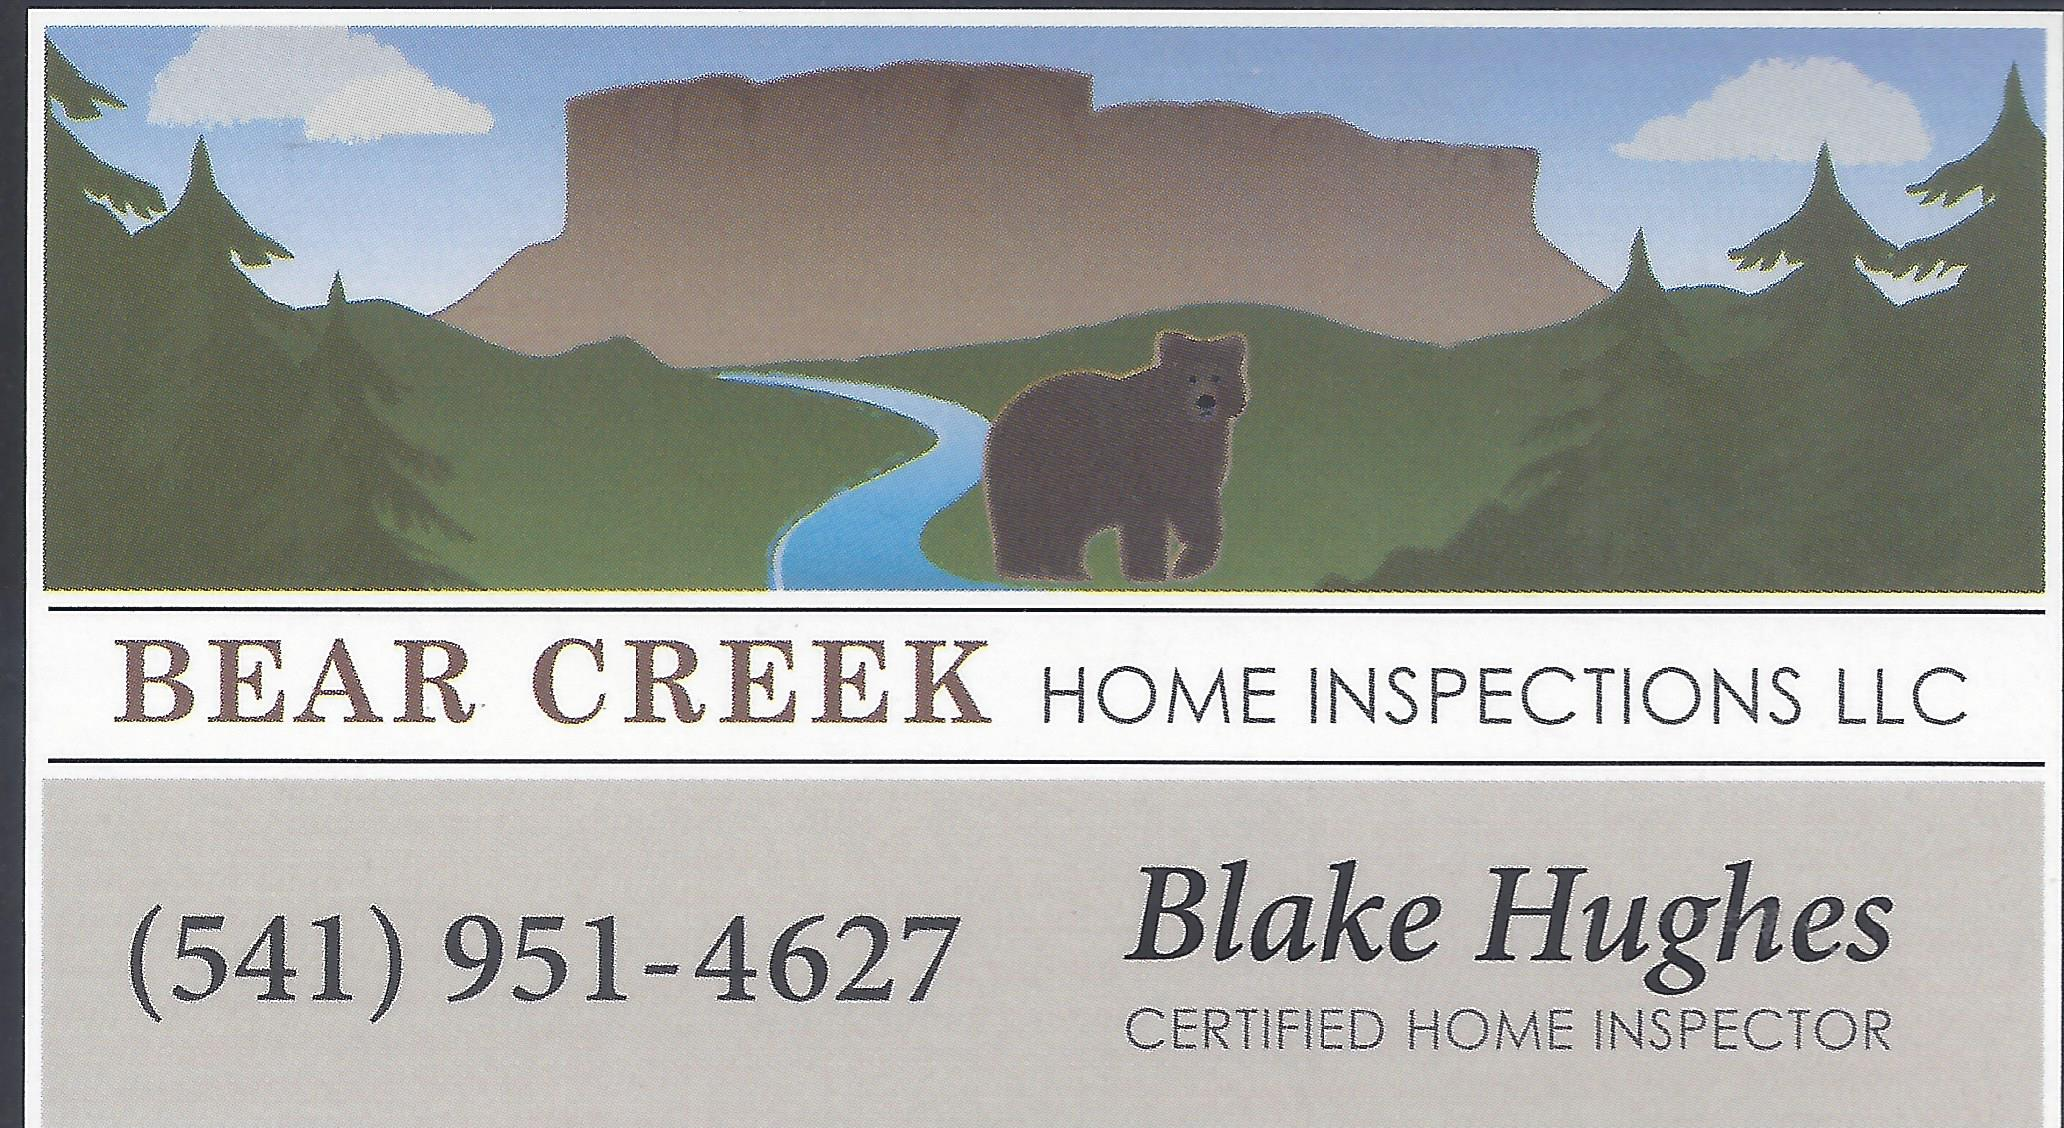 Bear Creek Home Inspections